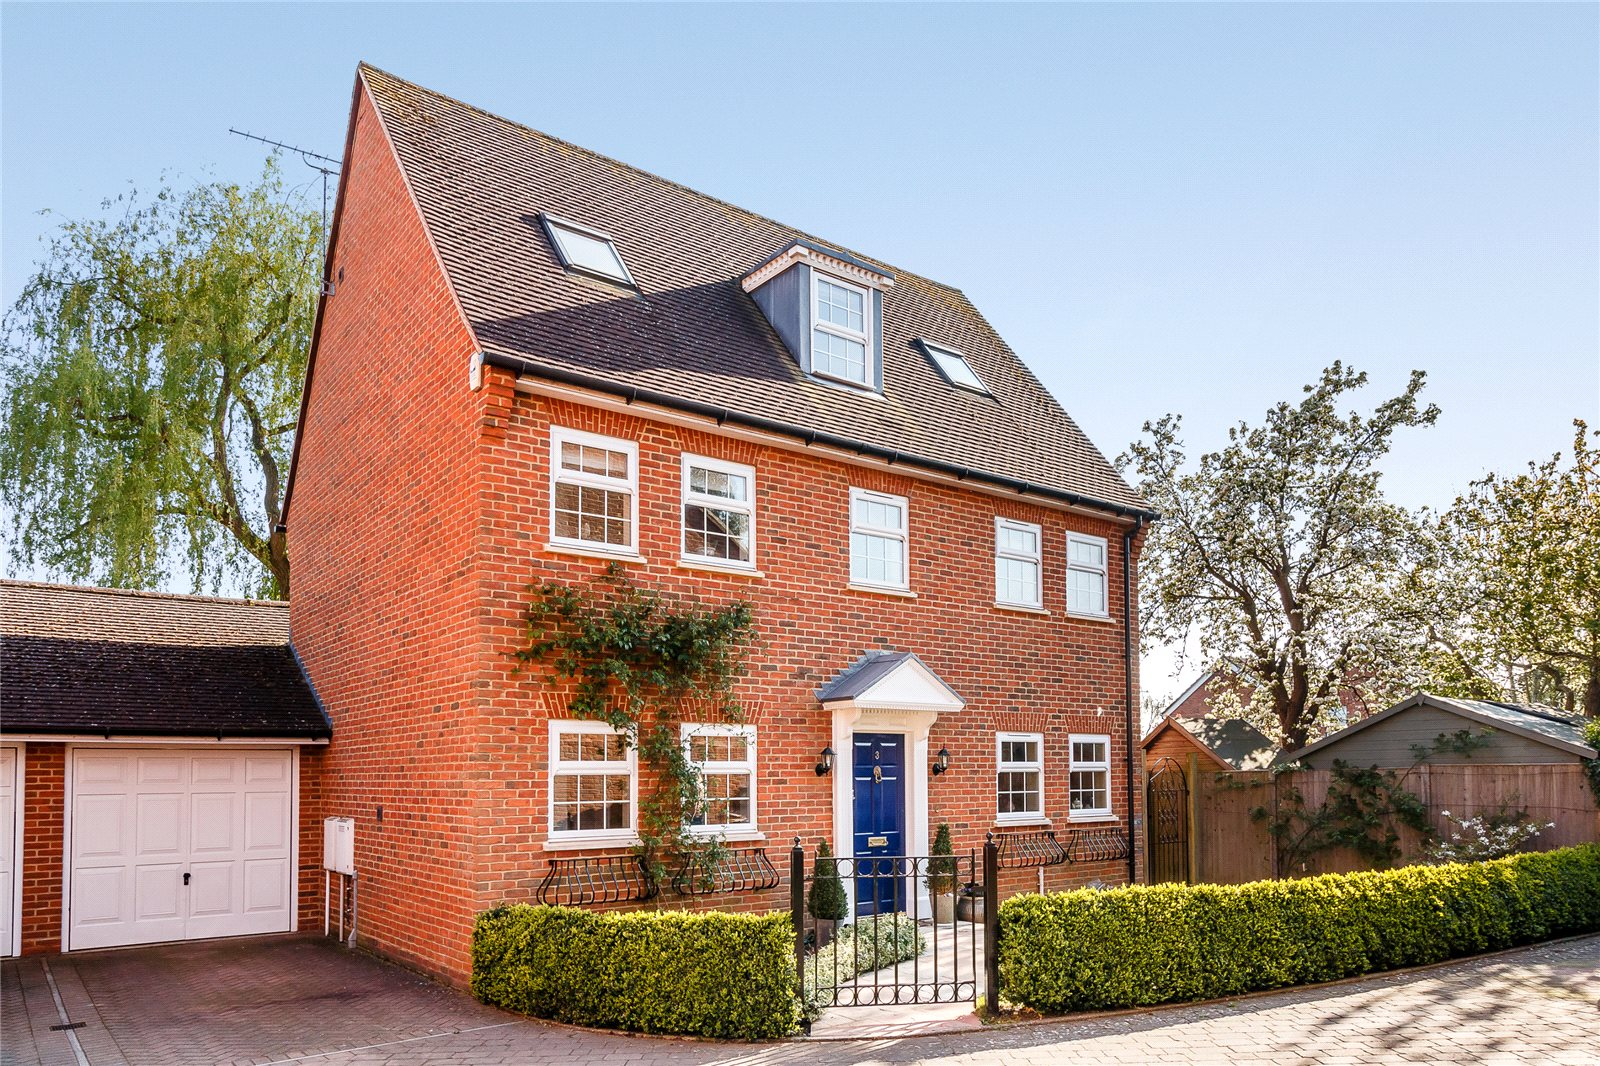 Single Family Home for Sale at Cedar Gardens, Beta Road, Chobham, Surrey, GU24 Chobham, England